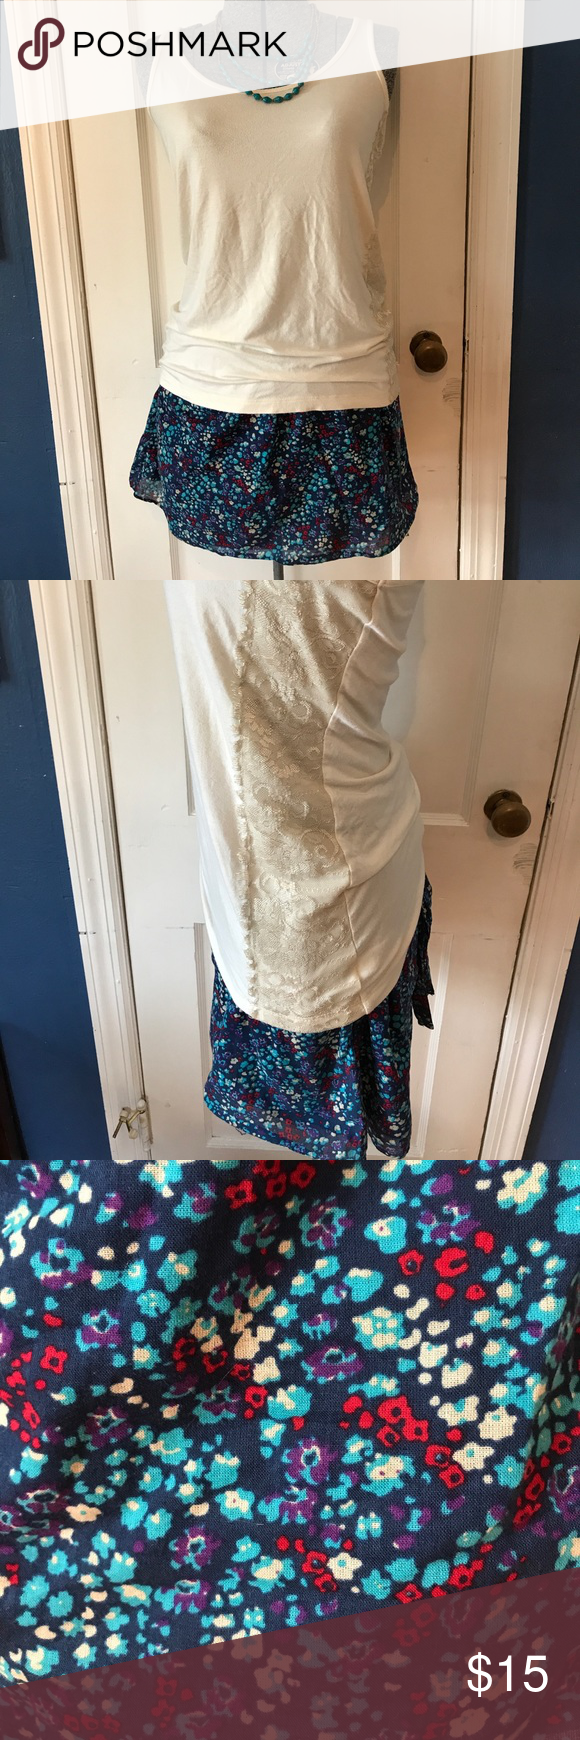 Full outfit!!! Simple yet unique cream colored tank top with a thick lace accent down the left side. The skirt is perfect for spring and summer with a nice floral design and tie in the back. The skirt is fitted with a side zipper. The top is a size small and the skirt a medium Skirts Skirt Sets